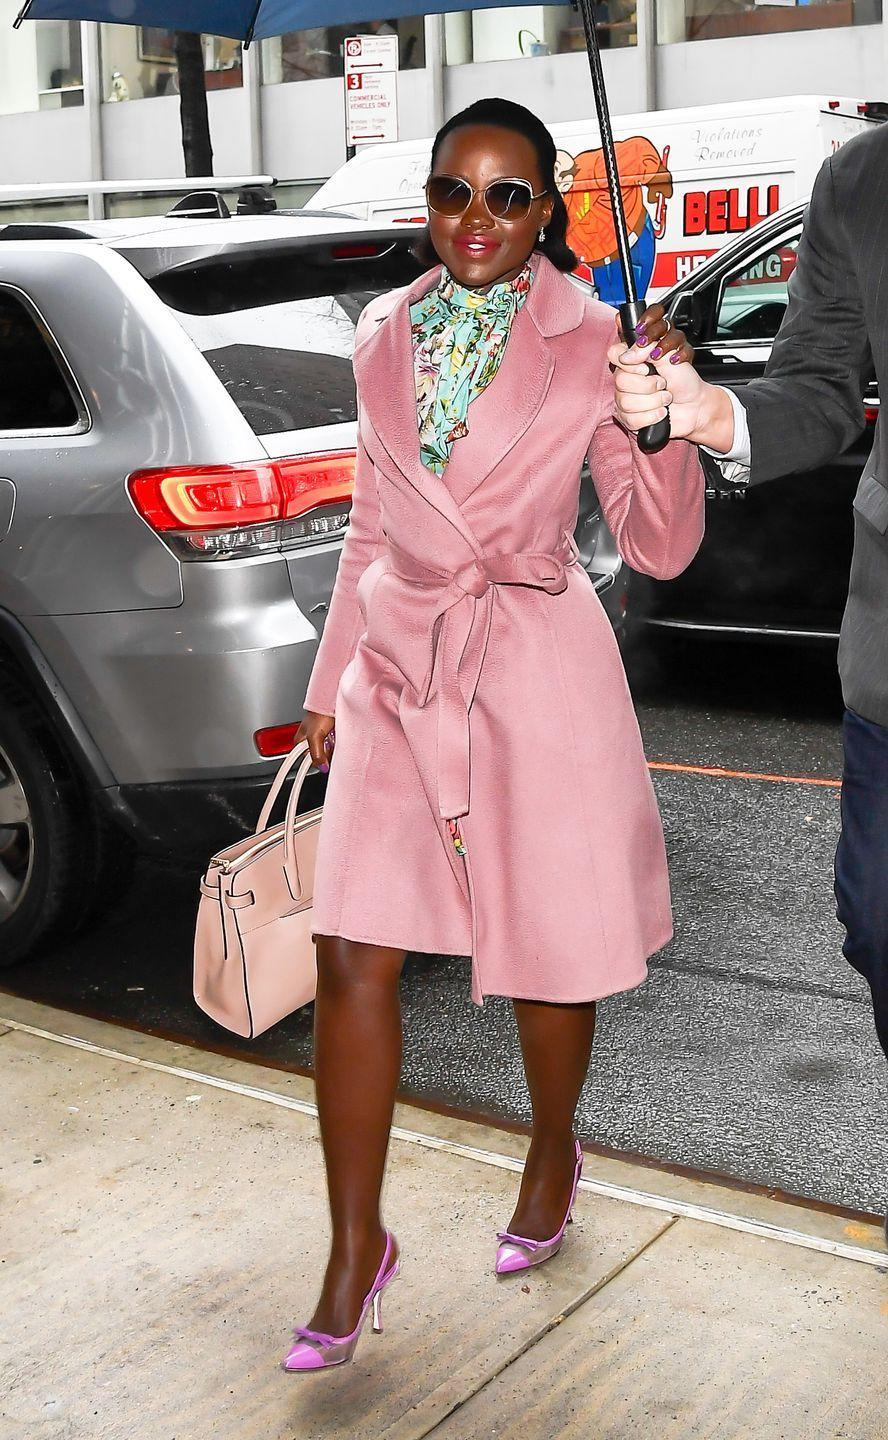 <p>Attending an event in New York in a bright floral Dolce & Gabbana dress, paired with a powder-pink coat and matching accessories. </p>